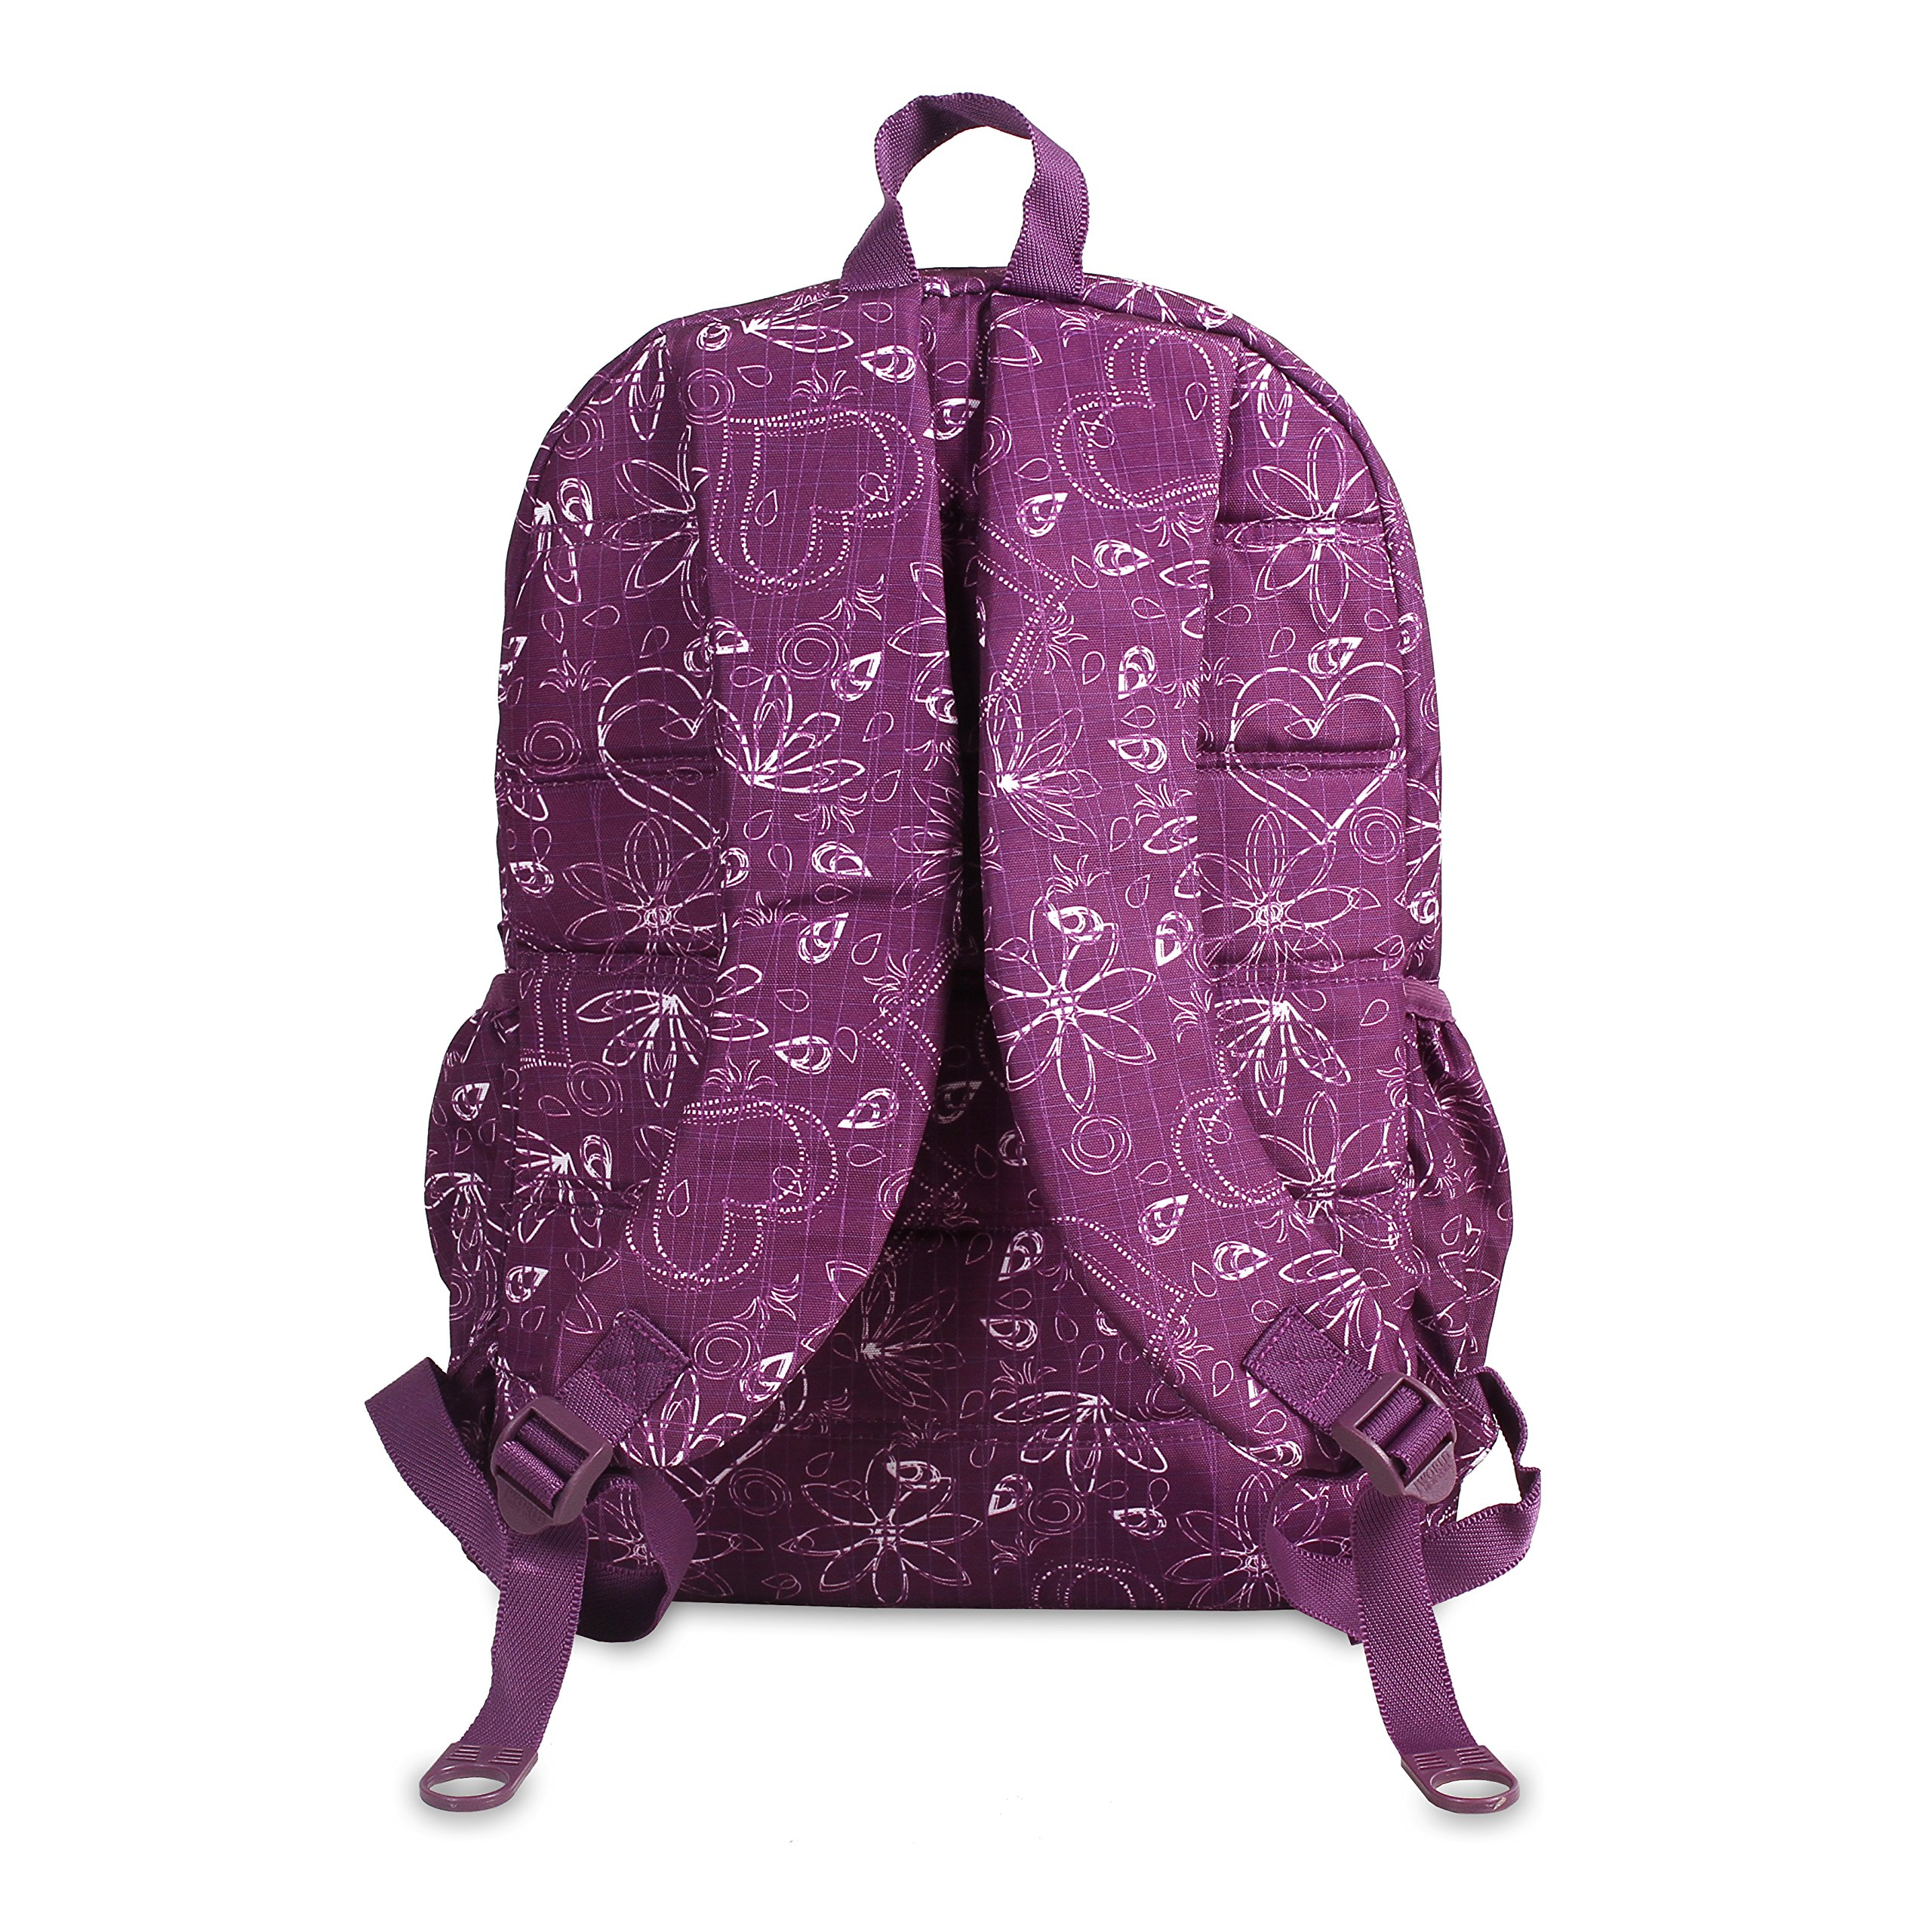 J World New York Oz Backpack, Love Purple by J World New York (Image #2)